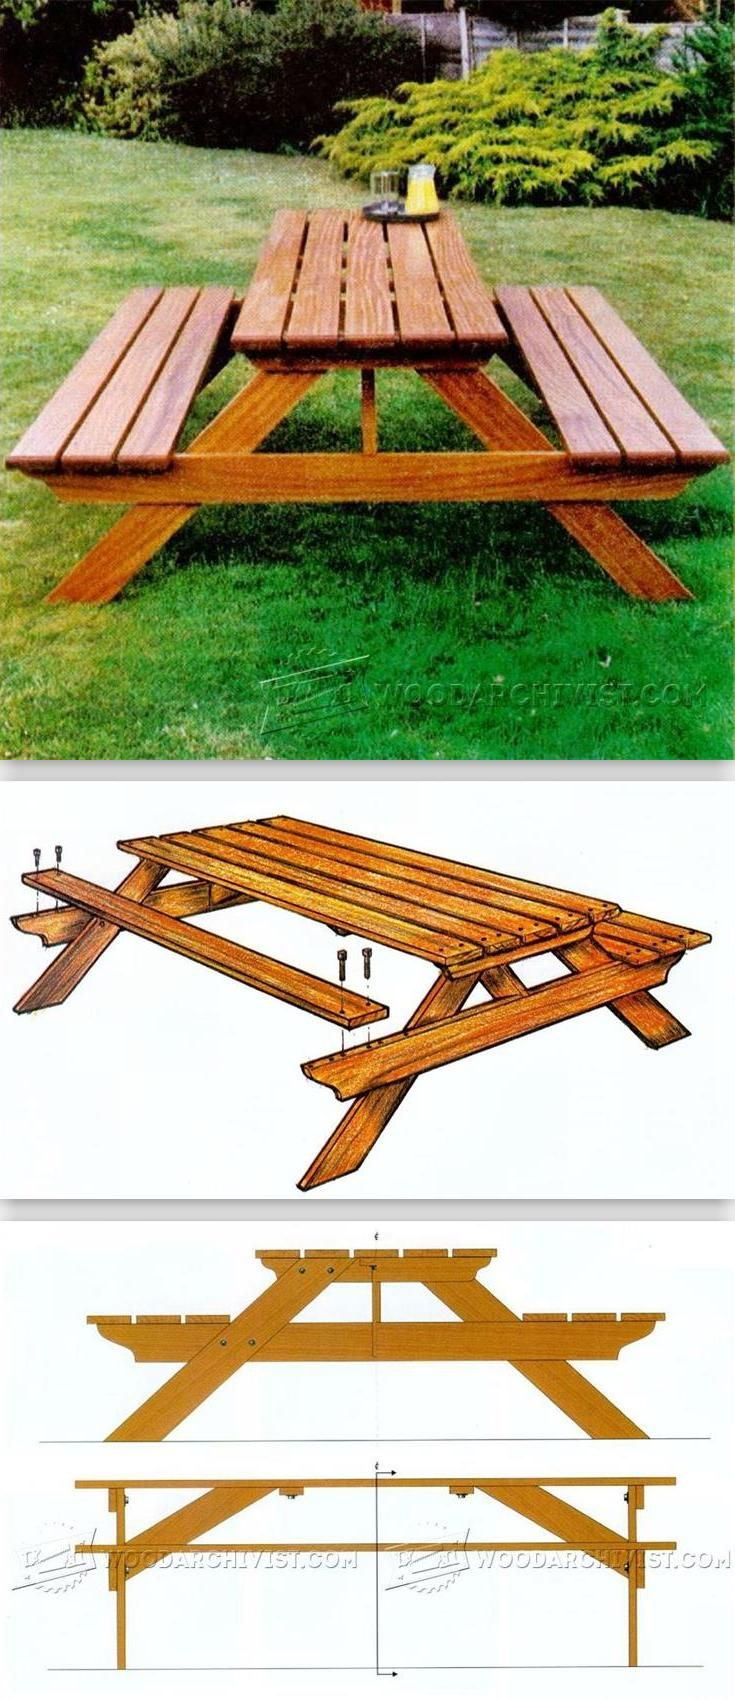 Garden Picnic Table Plans - Outdoor Furniture Plans and Projects | WoodArchivist.com